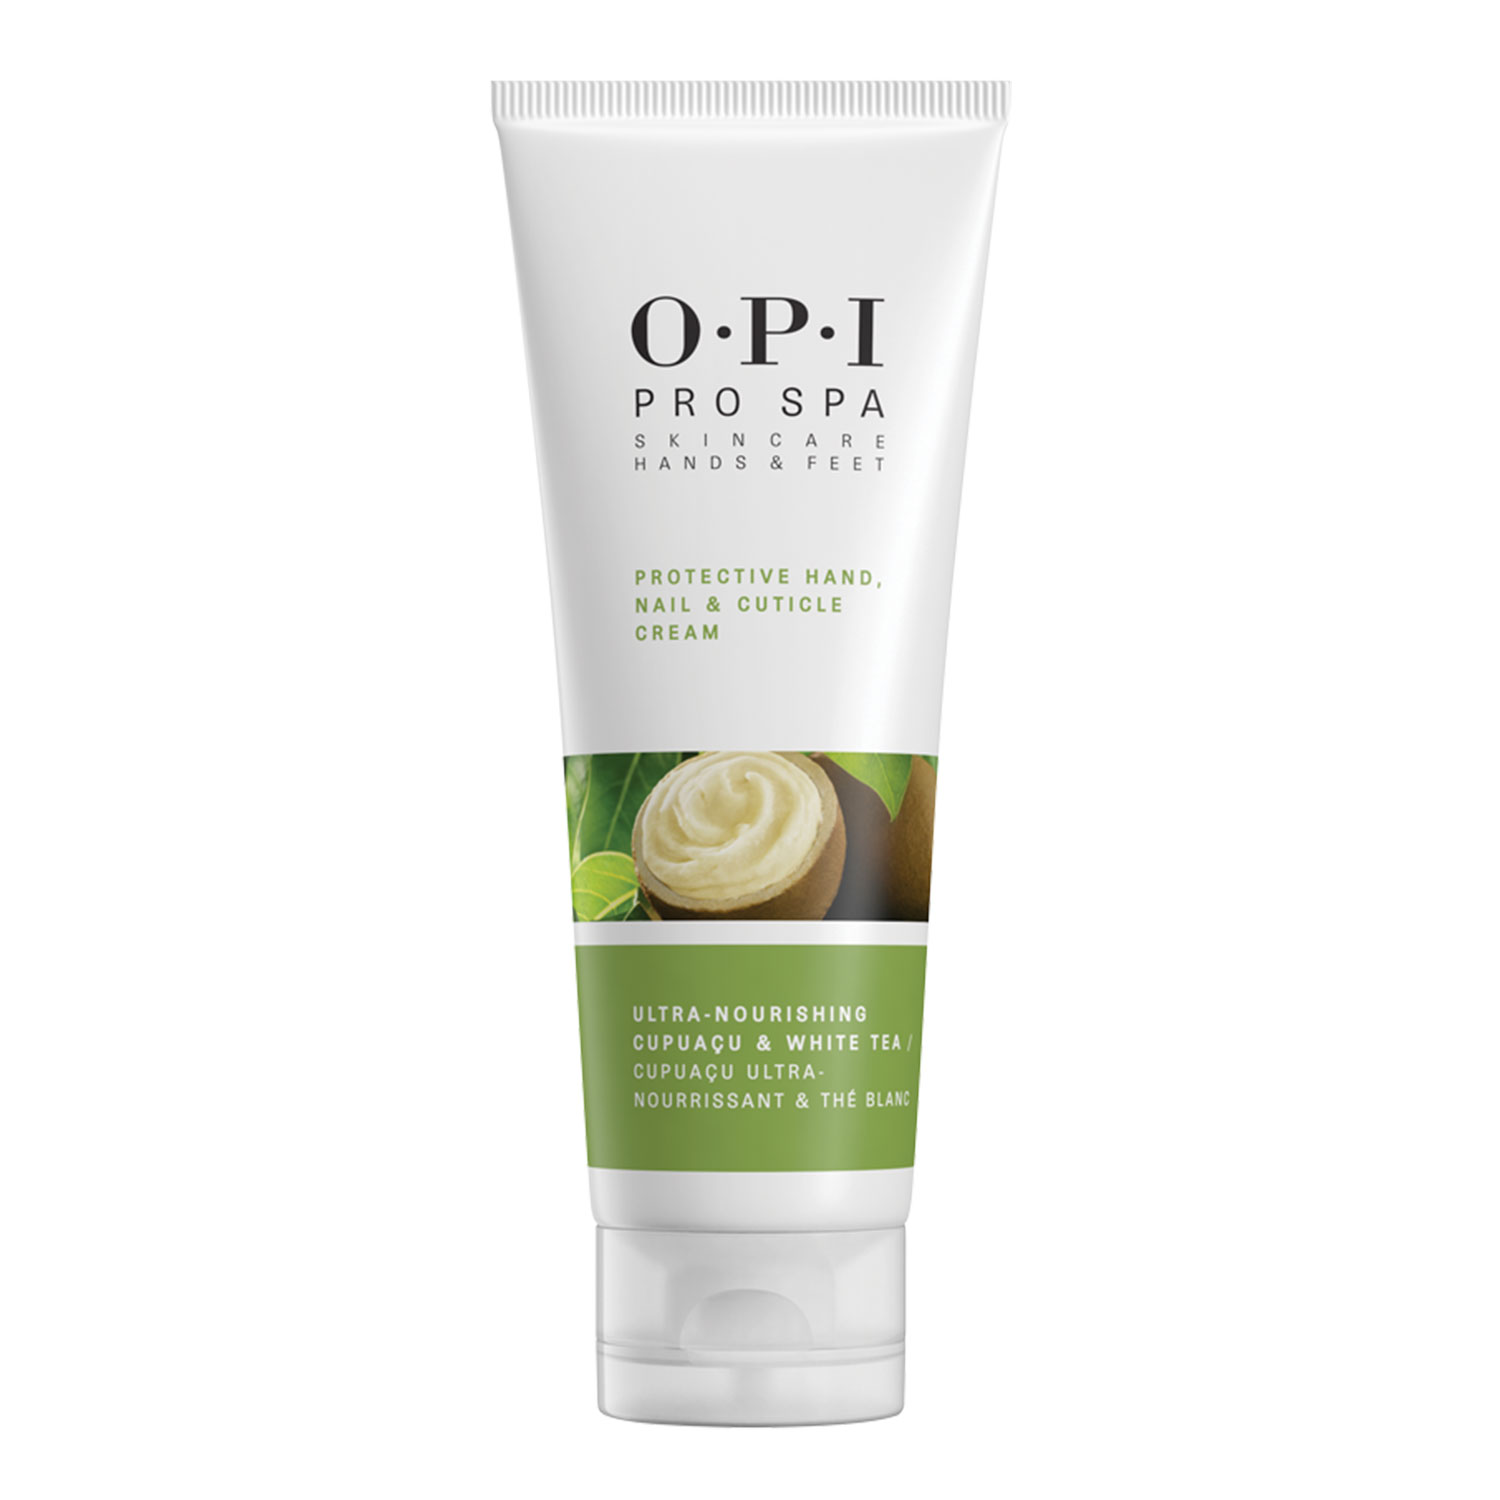 Pro Spa - Protective Hand, Nail and Cuticle Cream - 118ml